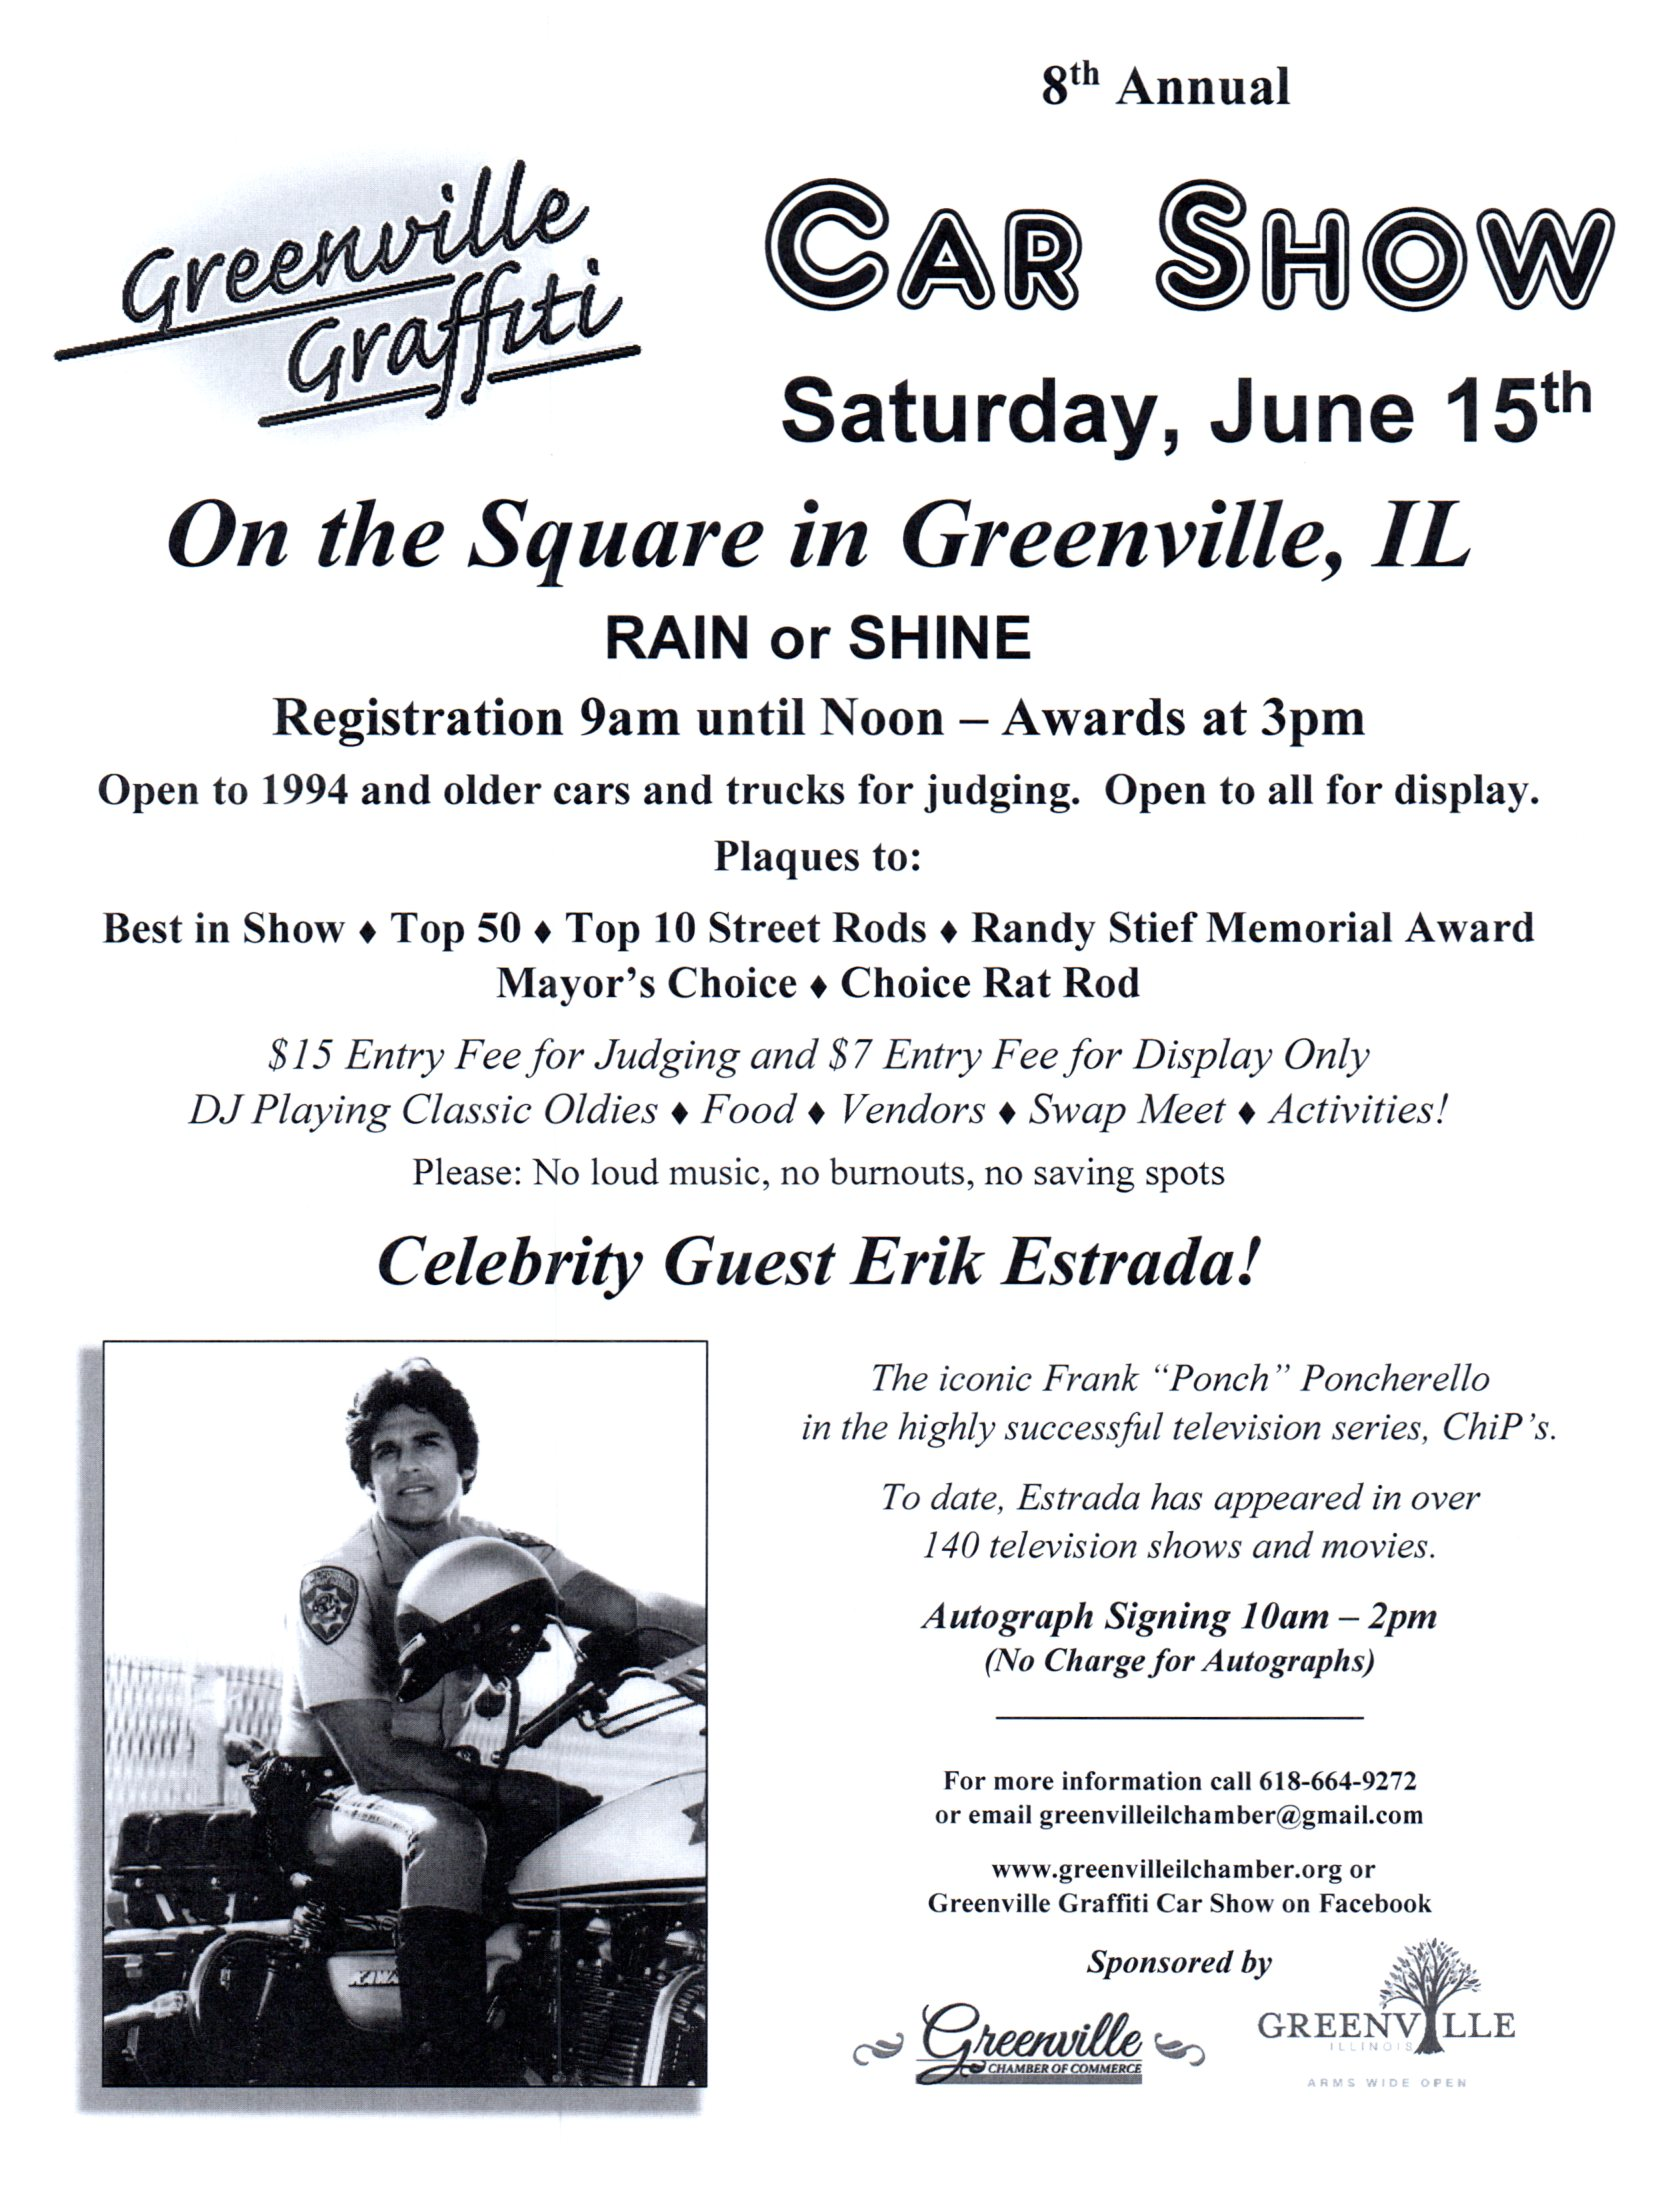 Greenville Graffiti Car Show with appearance by Erik Estrada - Event Flyer